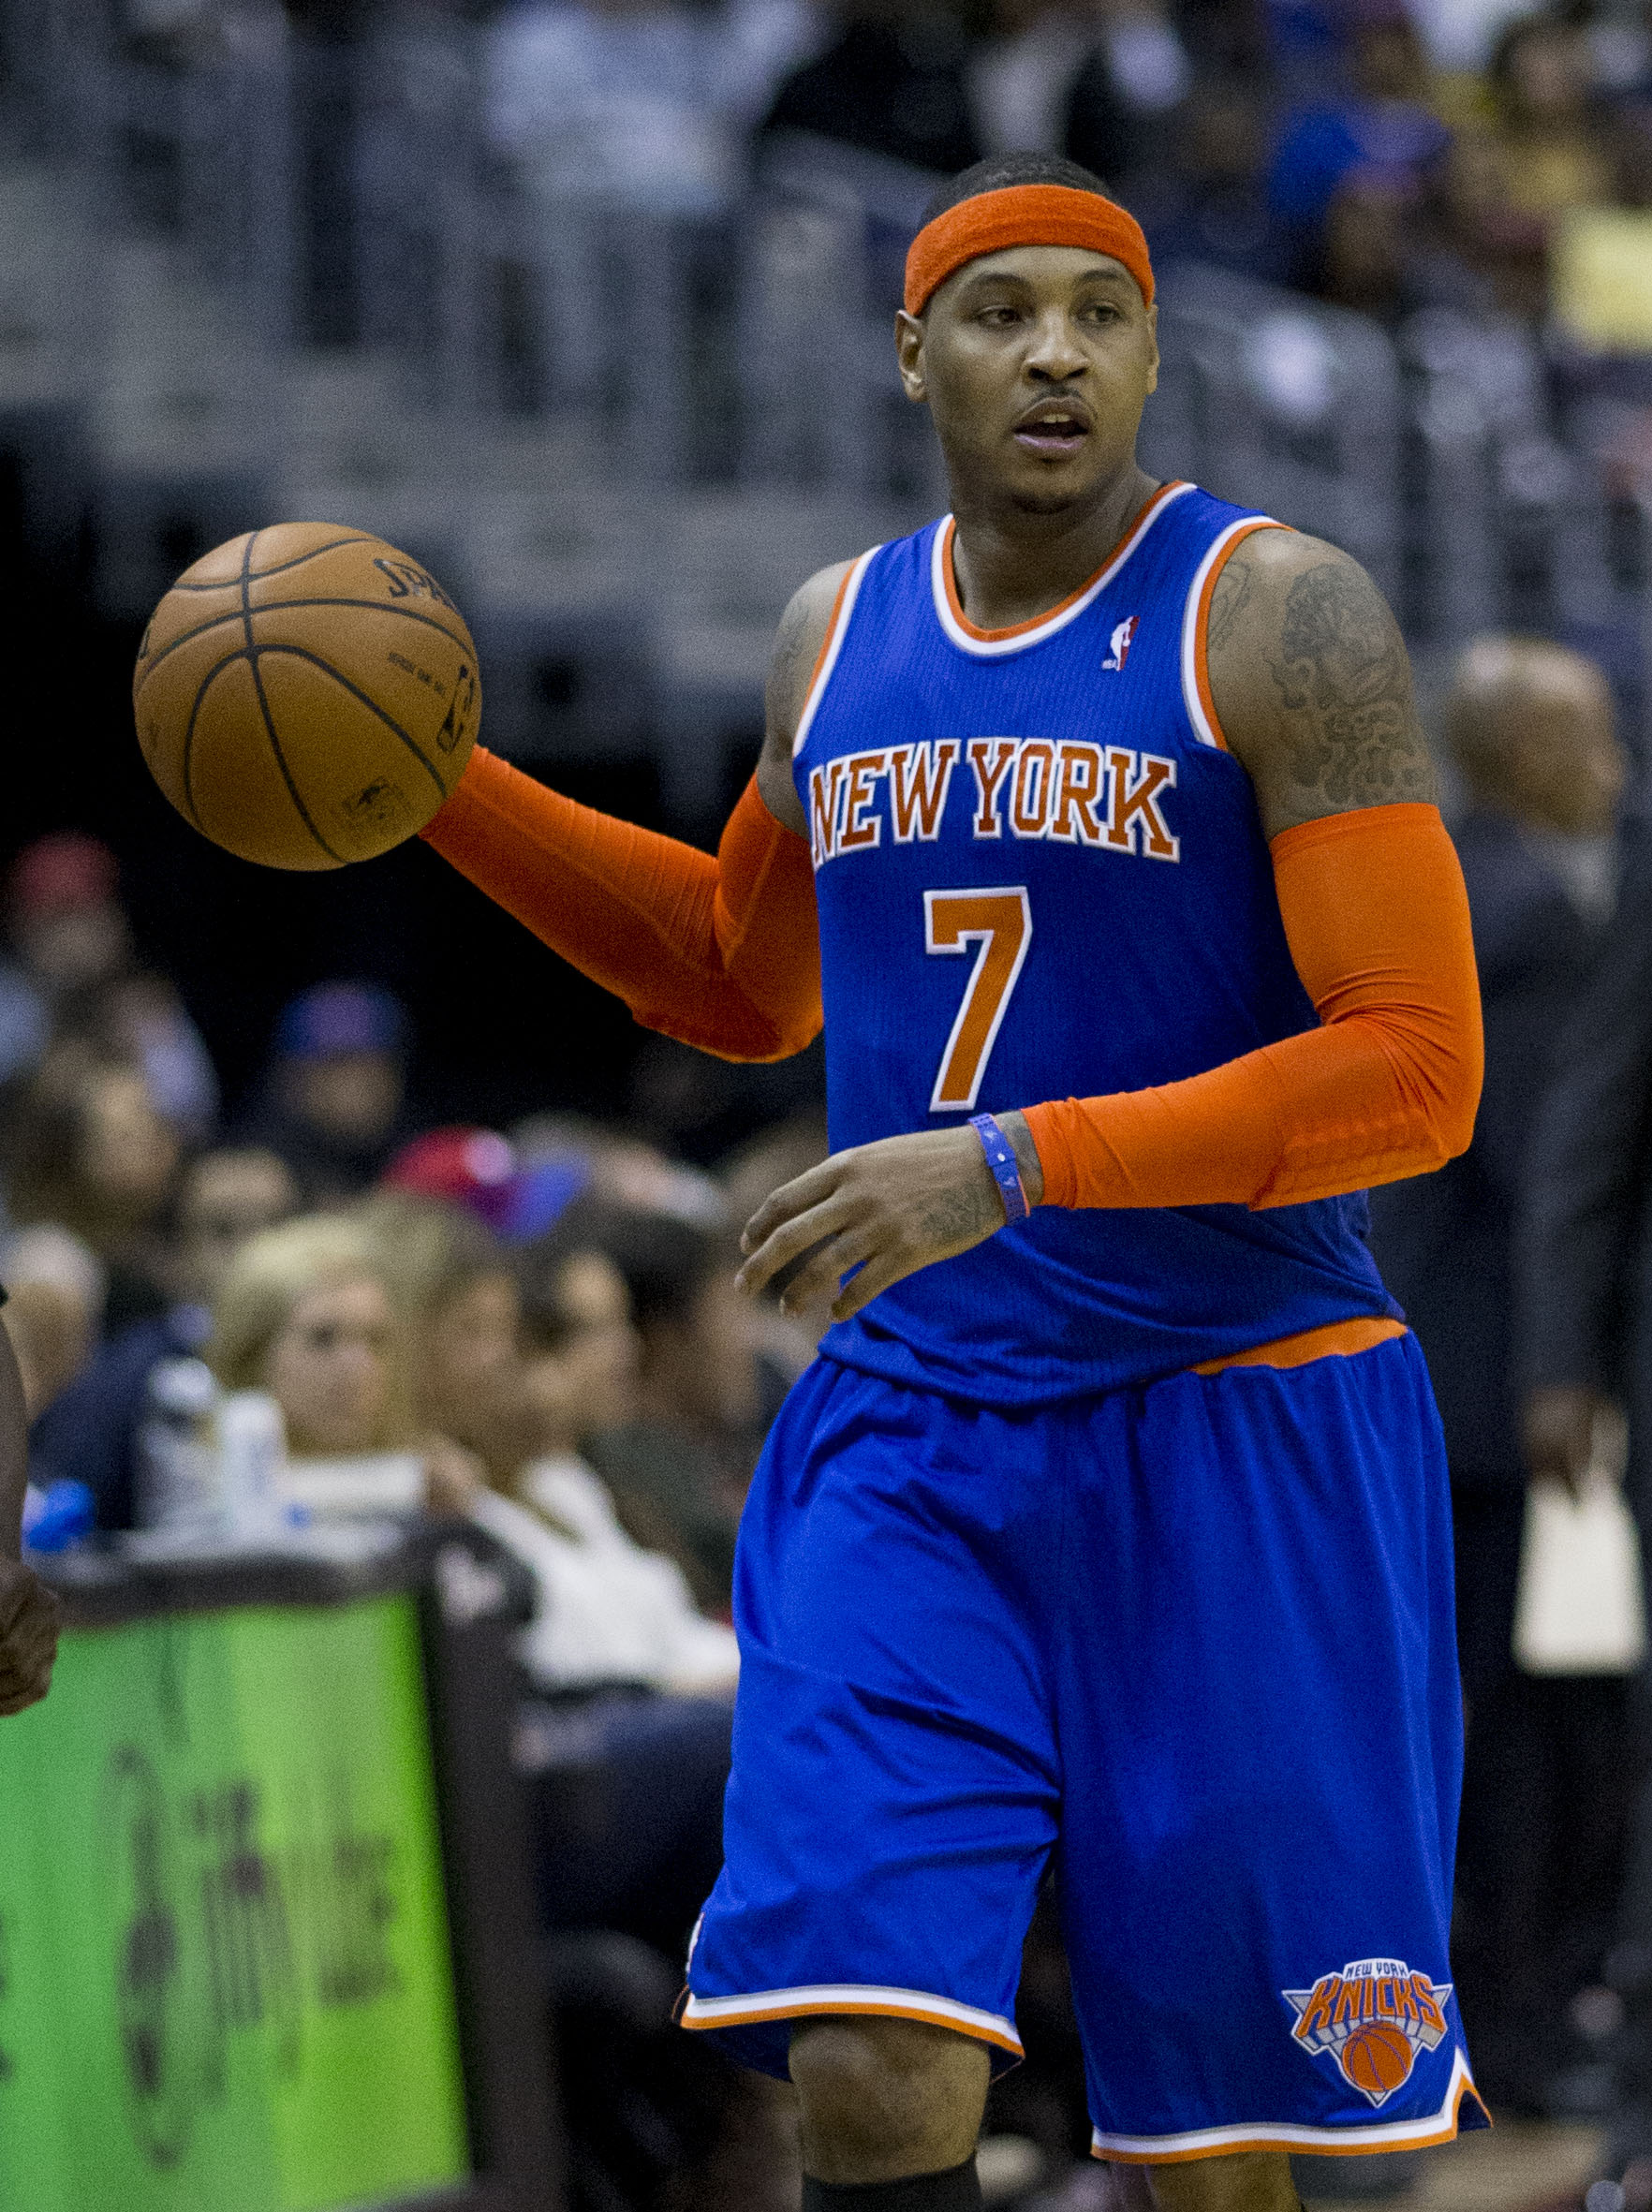 bf8cb7e6a787 Carmelo Anthony - Wikipedia